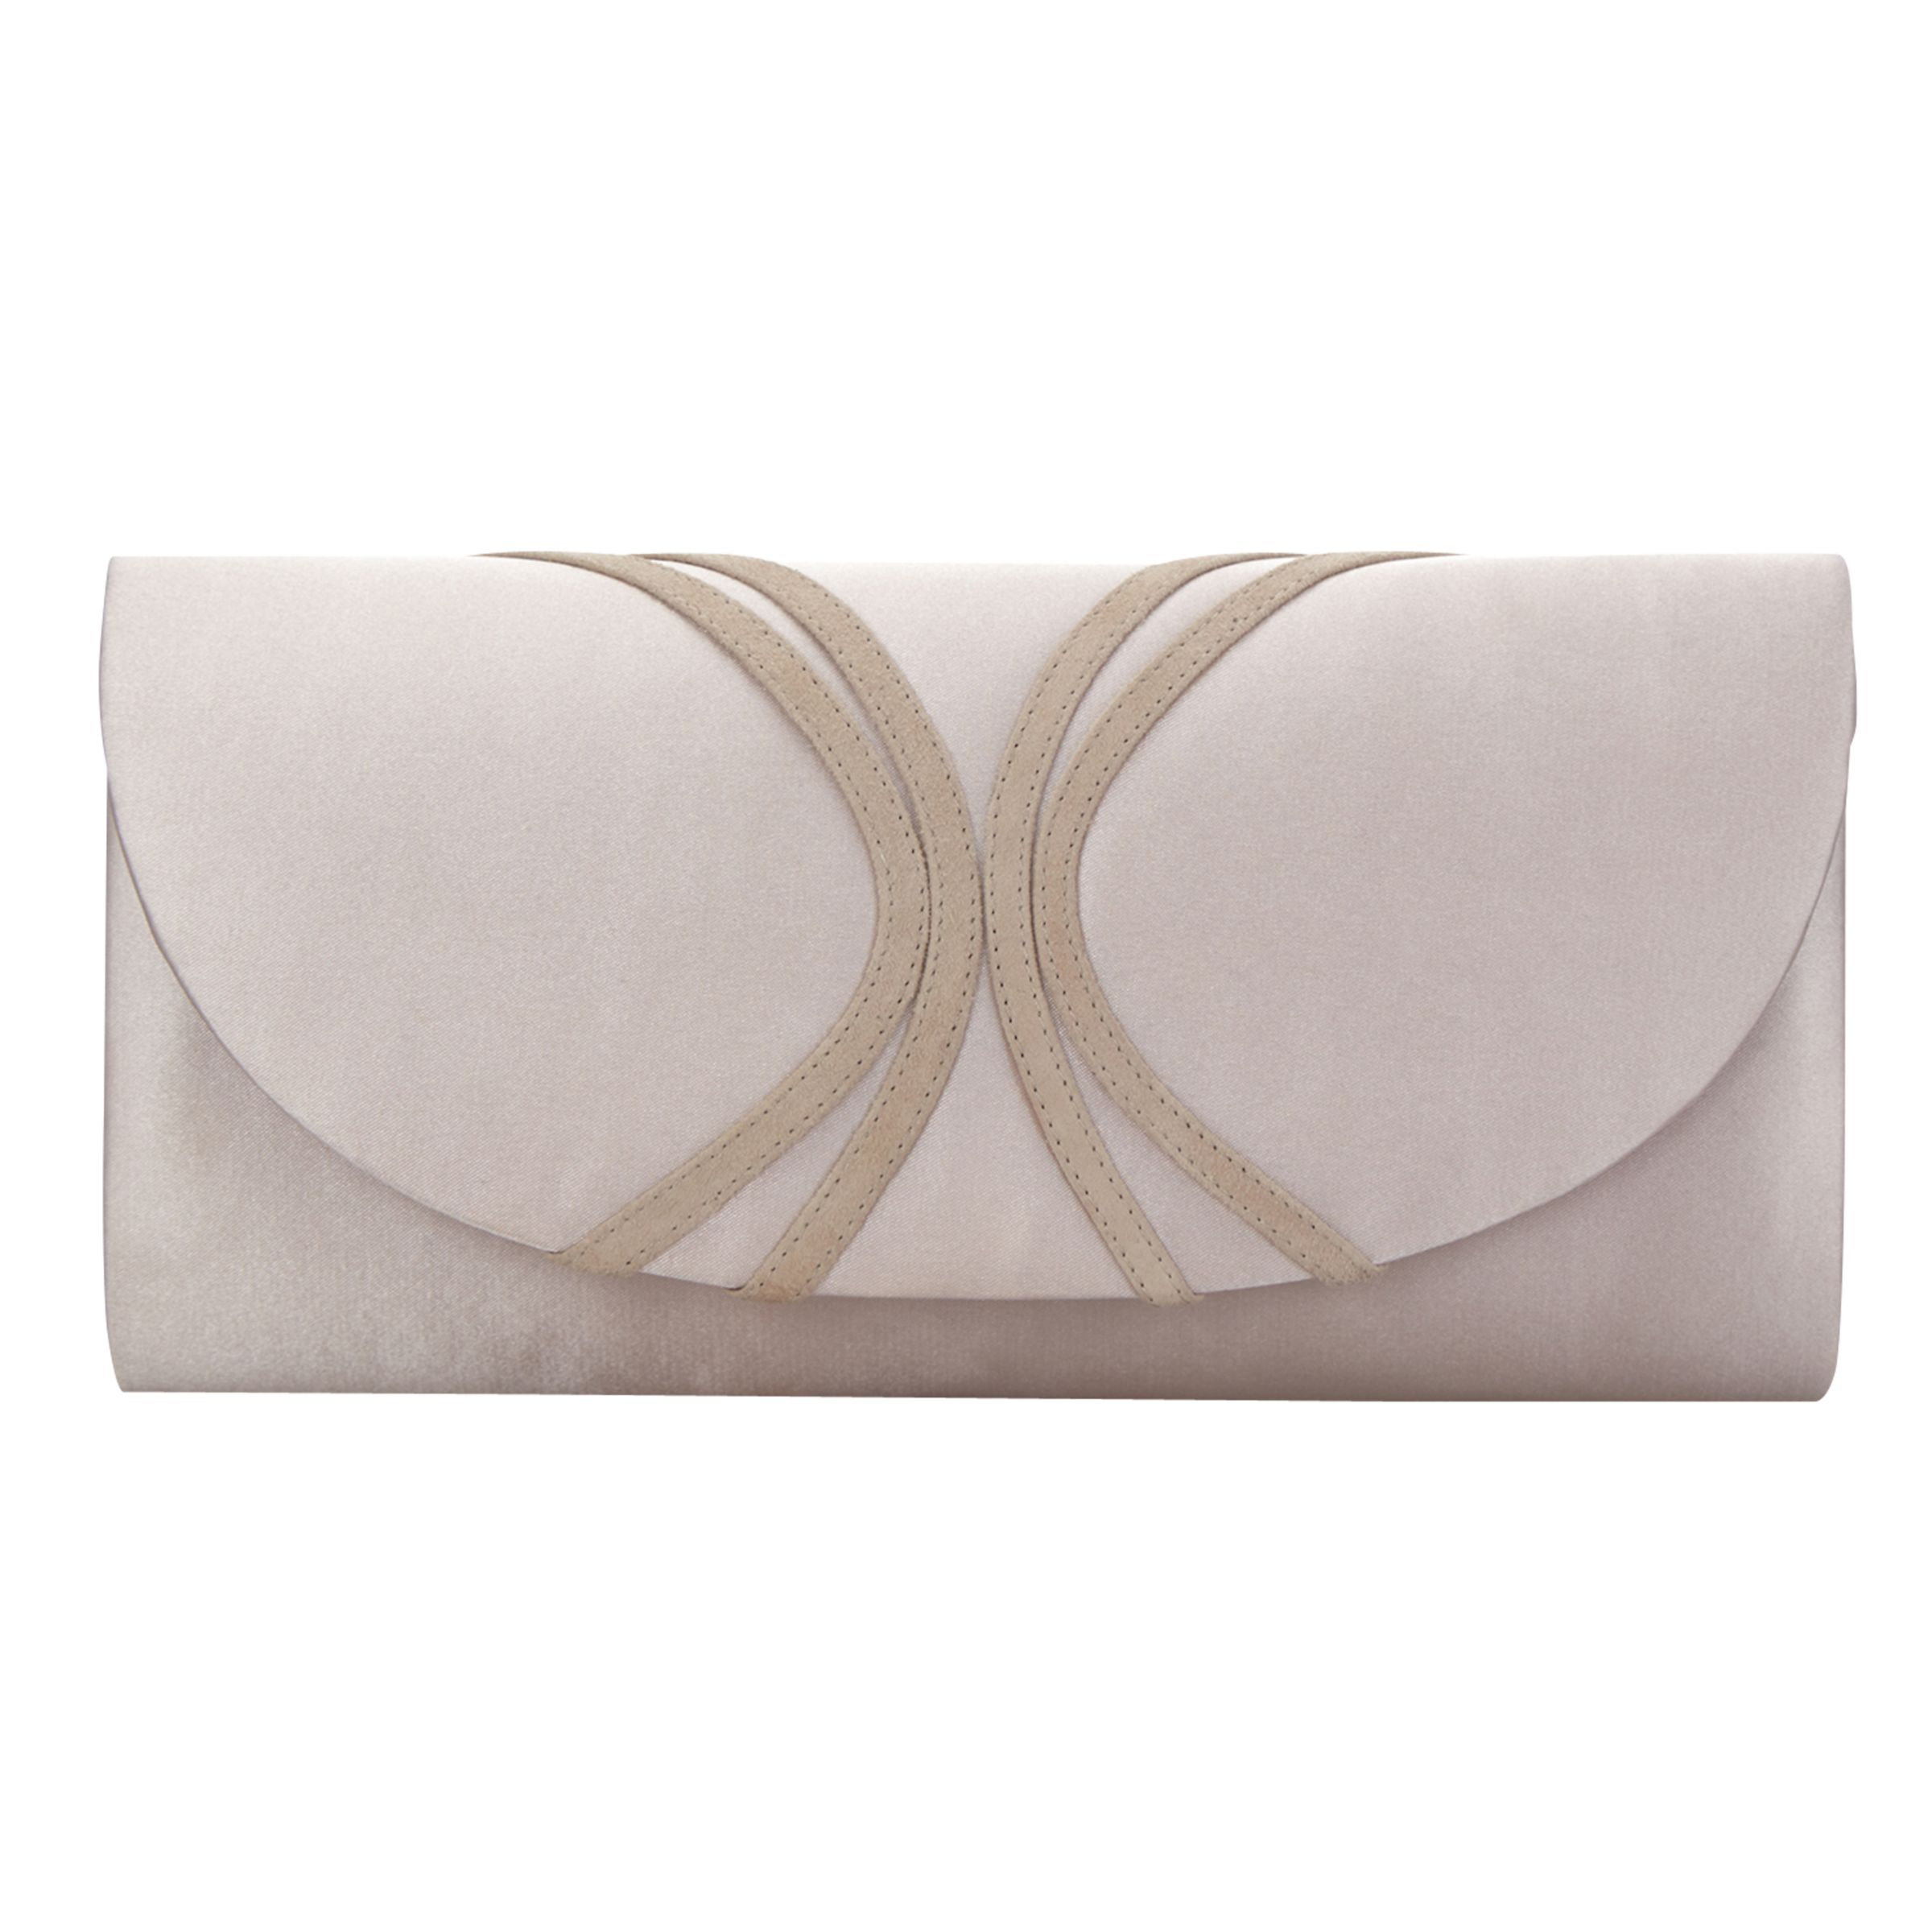 Jacques Vert Jacques Vert Piped Clutch Bag, Mid Neutral